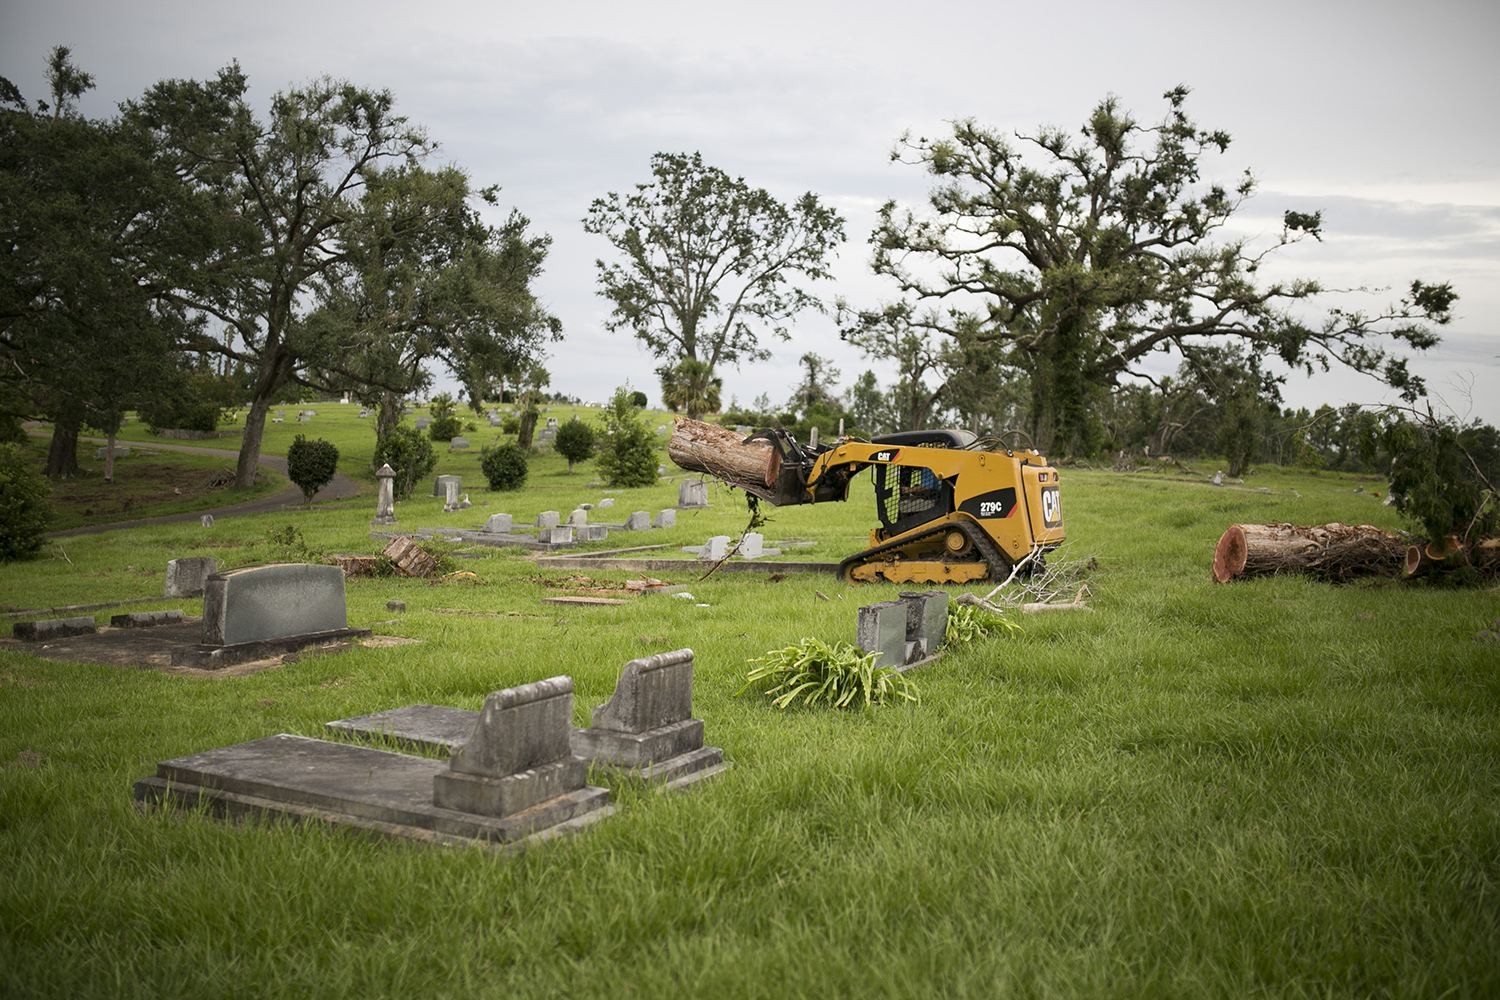 Chris Stallings hauls off felled trees from Riverside Cemetery in Marianna, Fla., nine months after Hurricane Michael. Stallings, who is from Mississippi, is one of the many workers who have temporarily moved to the region to join clean up crews.